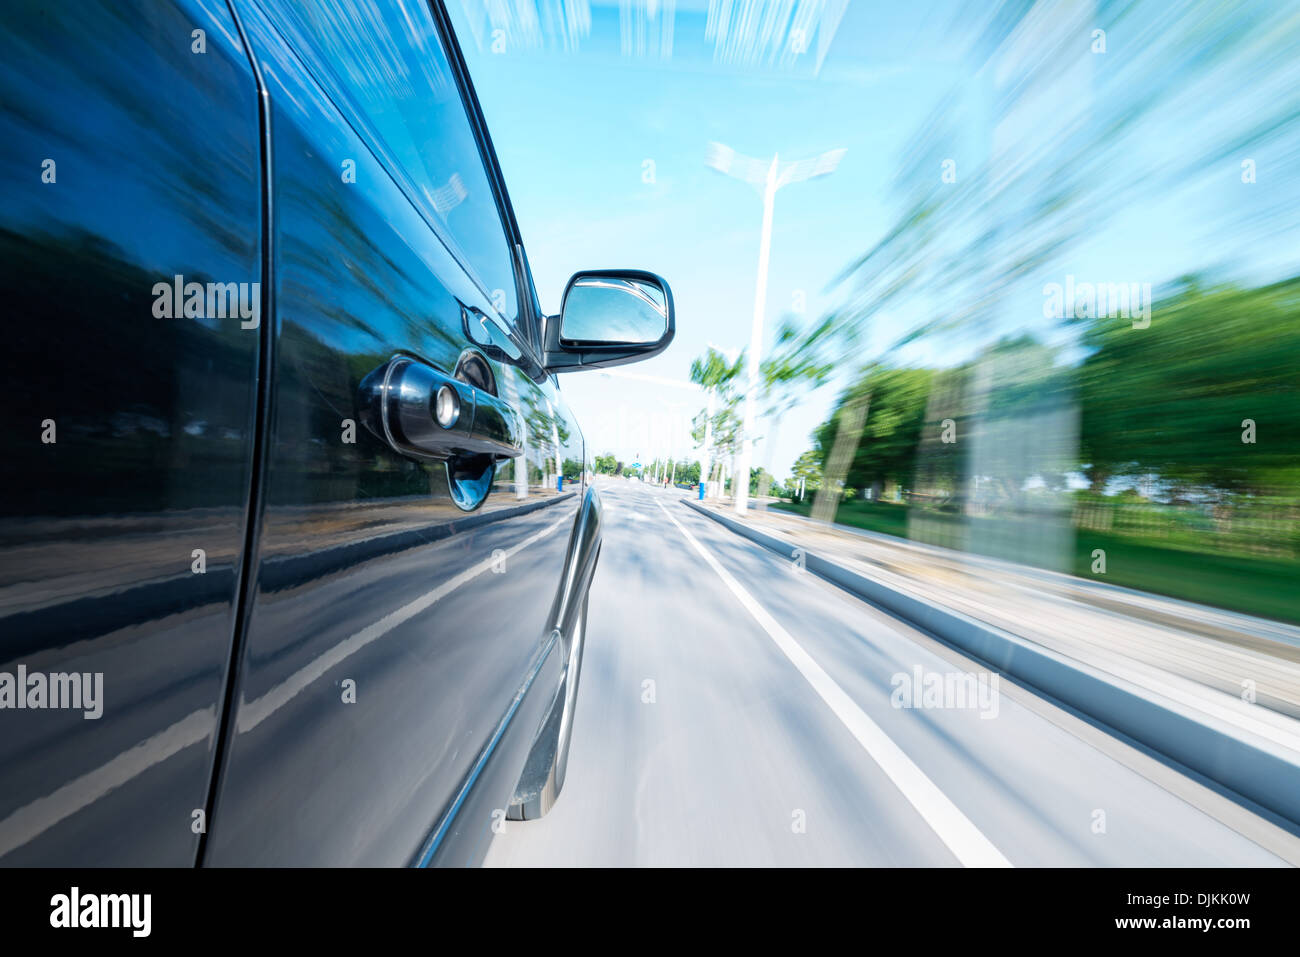 car on the road with motion blur background - Stock Image